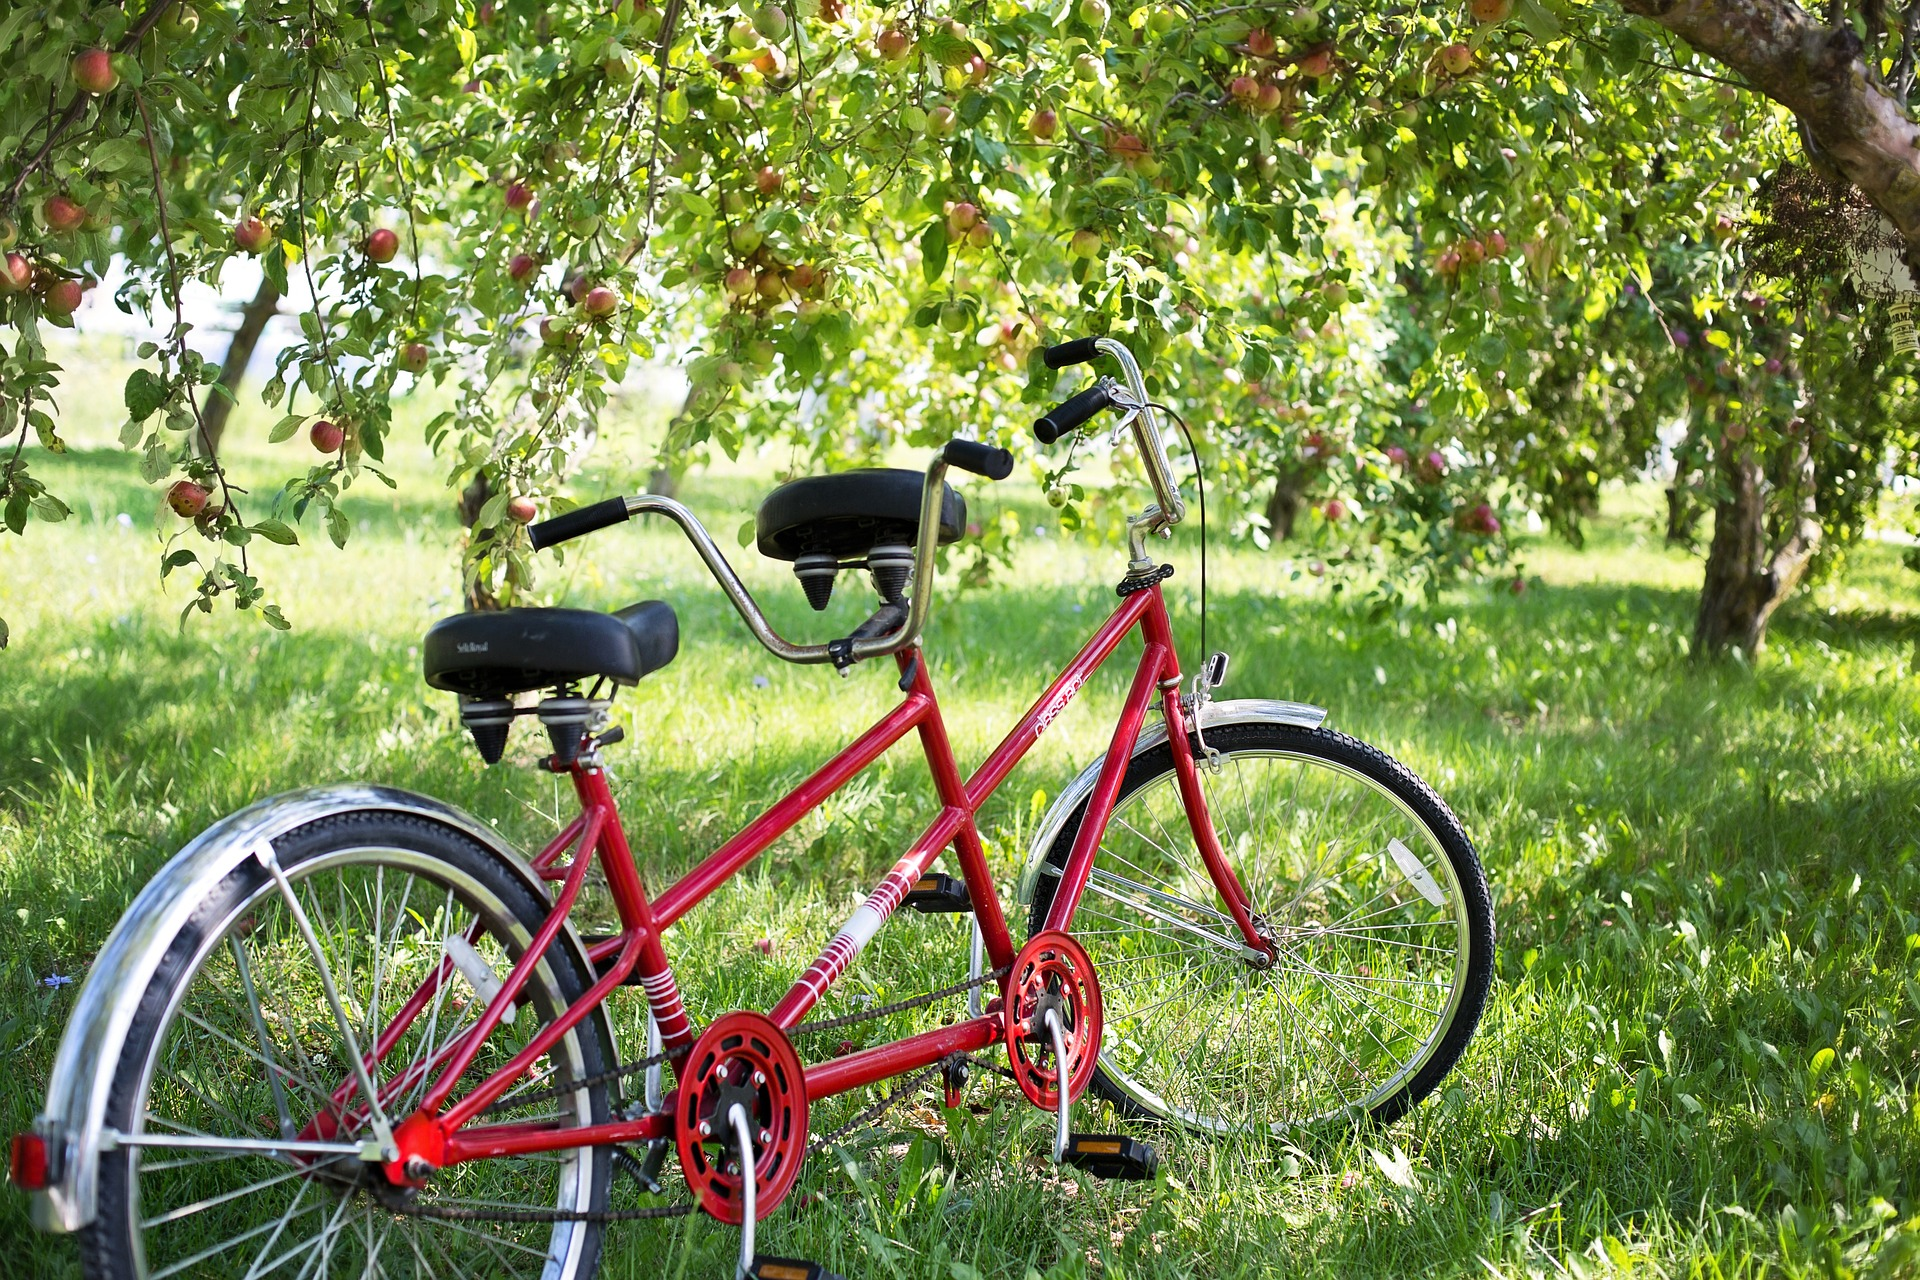 red tandem bicycle in a green field